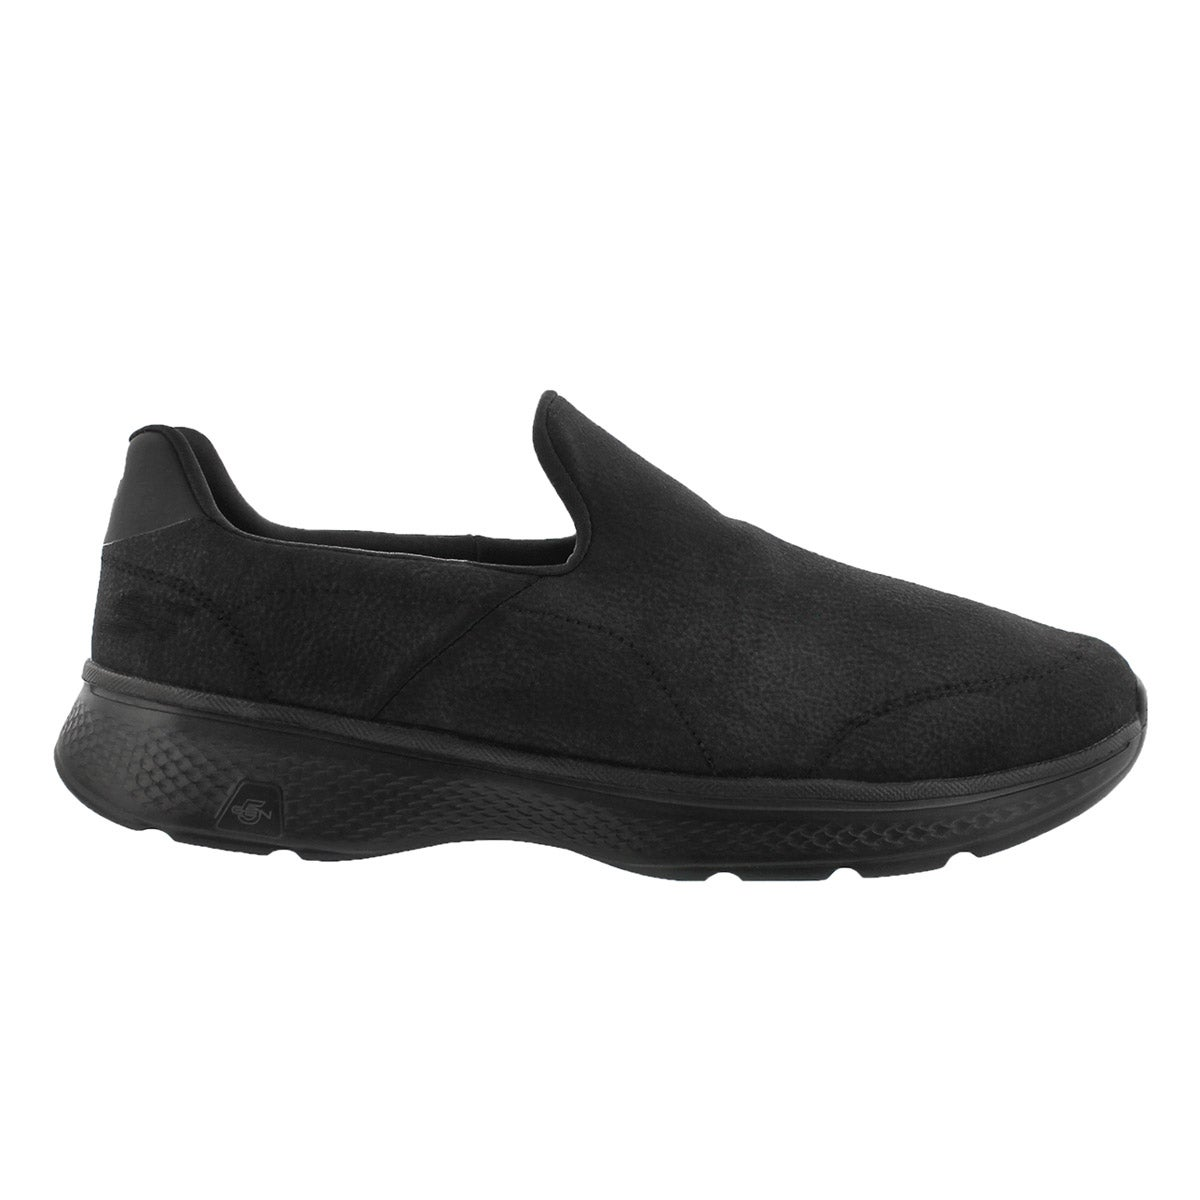 Mns GOwalk4 Remarkable blk slip on shoe